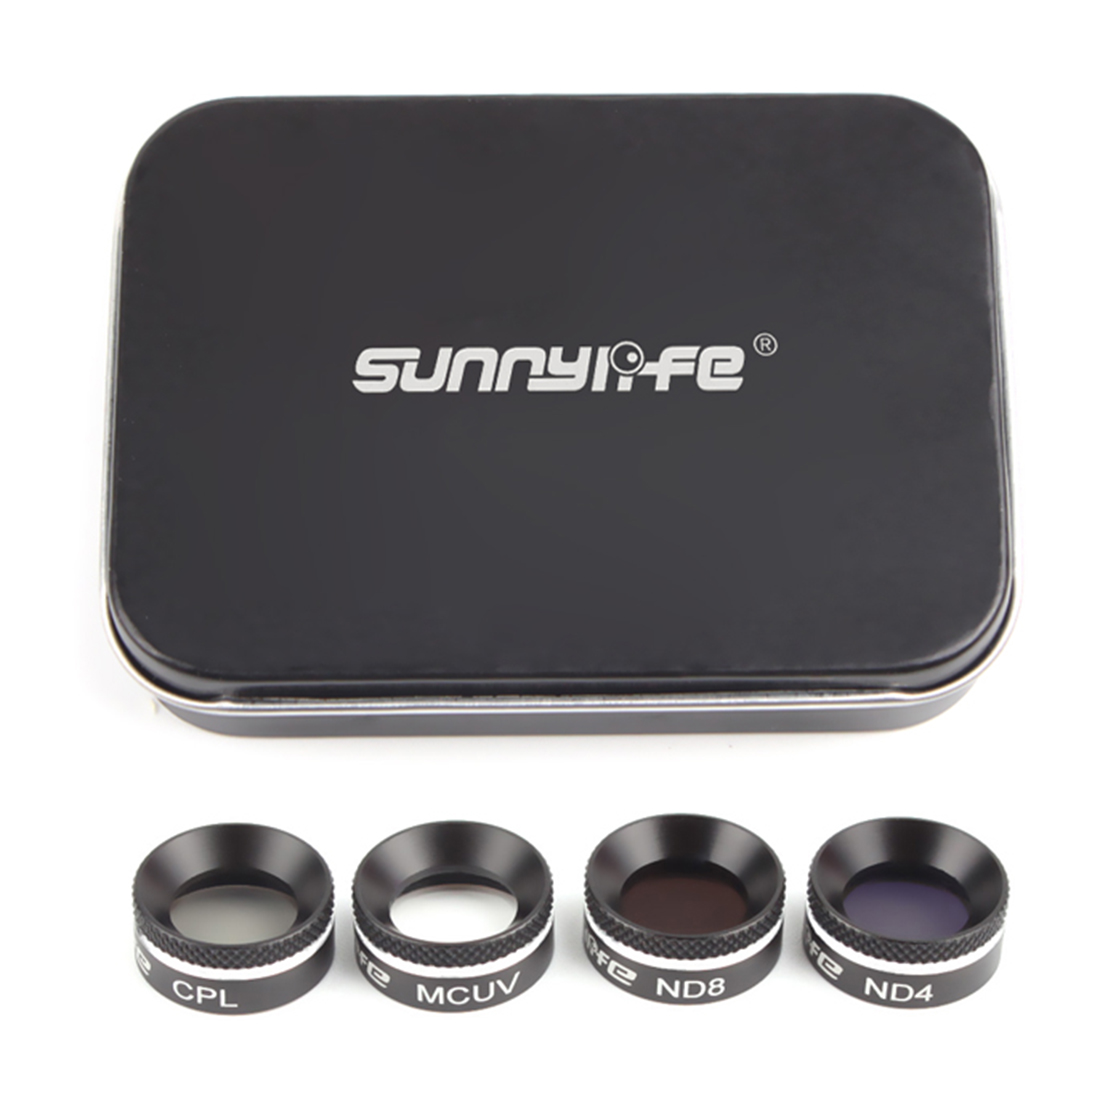 купить Sunnylife 4Pcs MCUV+CPL+ND4+ND8 ND4+ND8+ND16+ND32 Filter Set Multifunctional Filter for DJI Mavic Air Drone Accessories по цене 1990.97 рублей